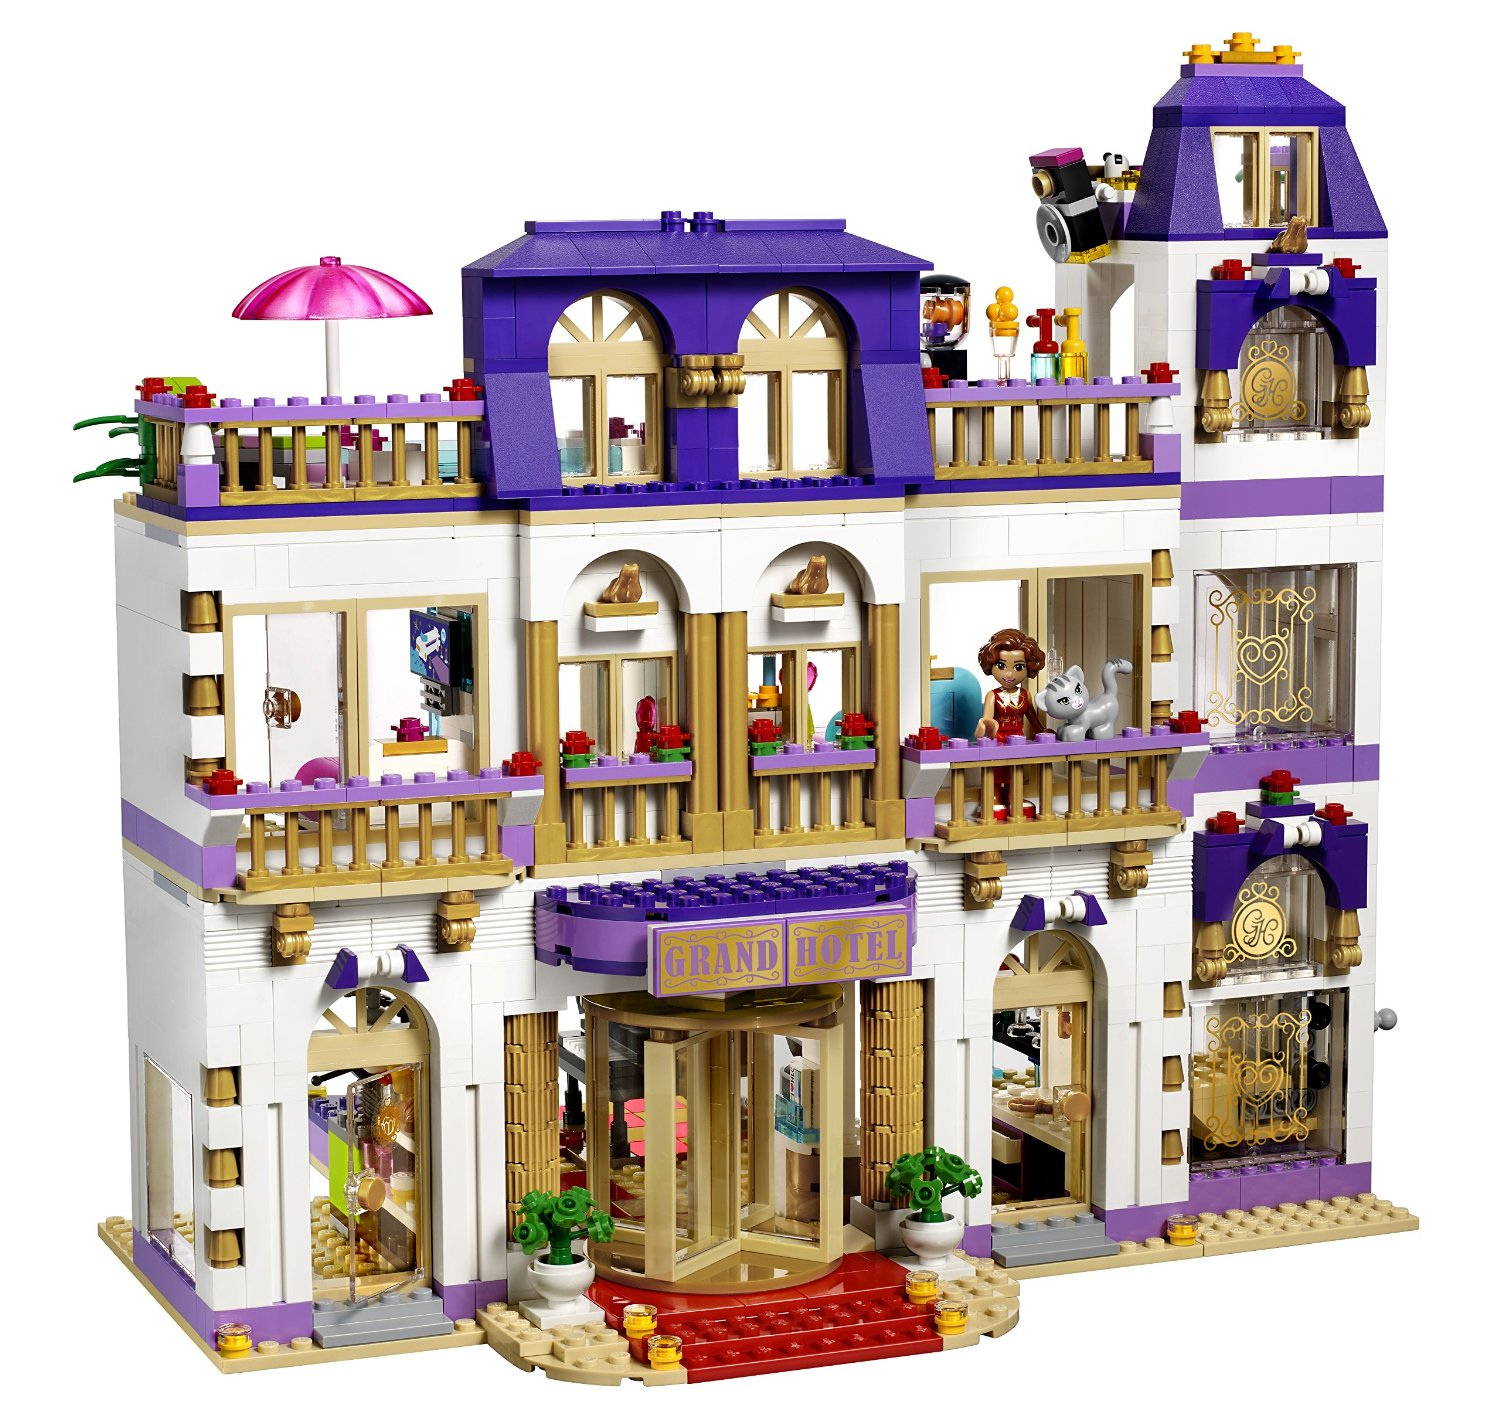 Lego Friends La Piscina Lego Friends 41101 Il Grand Hotel Di Heartlake Ebay